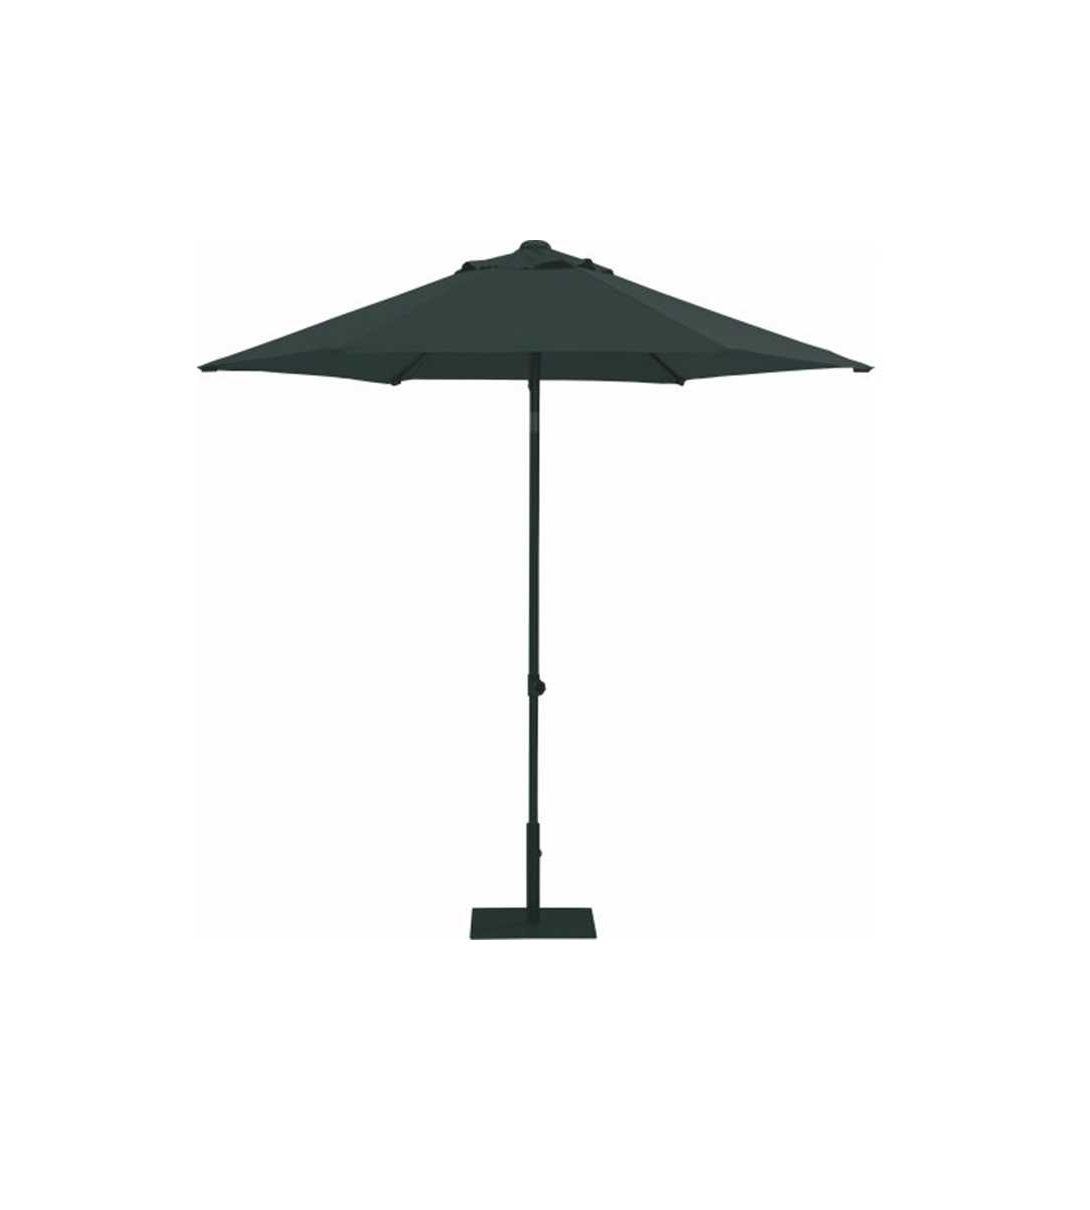 Ncandl 4S Anthracite Push Up 2 5M Parasol